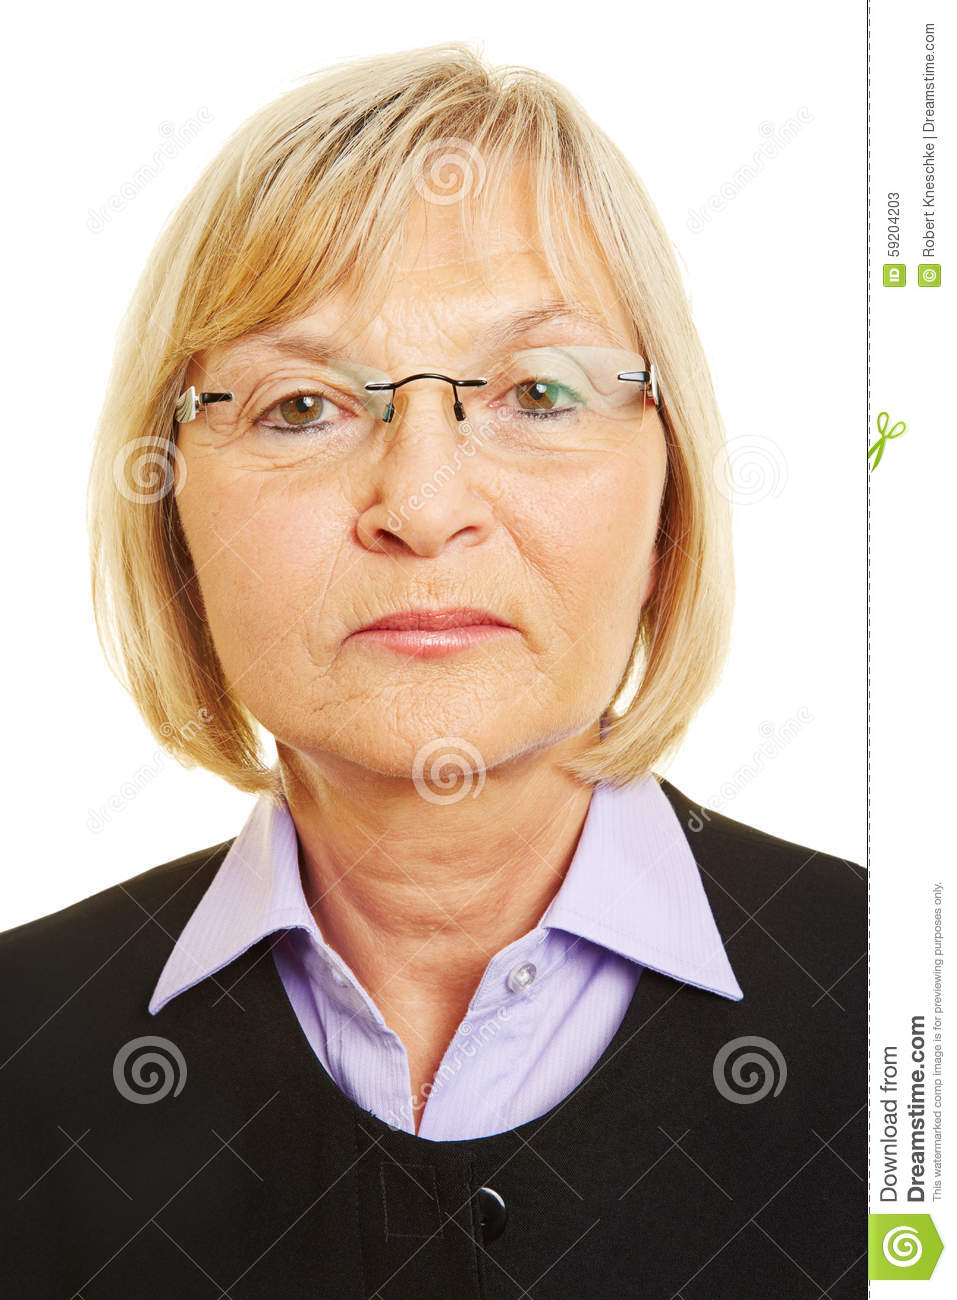 Neutral Face Of Old Woman Stock Photo - Image: 59204203